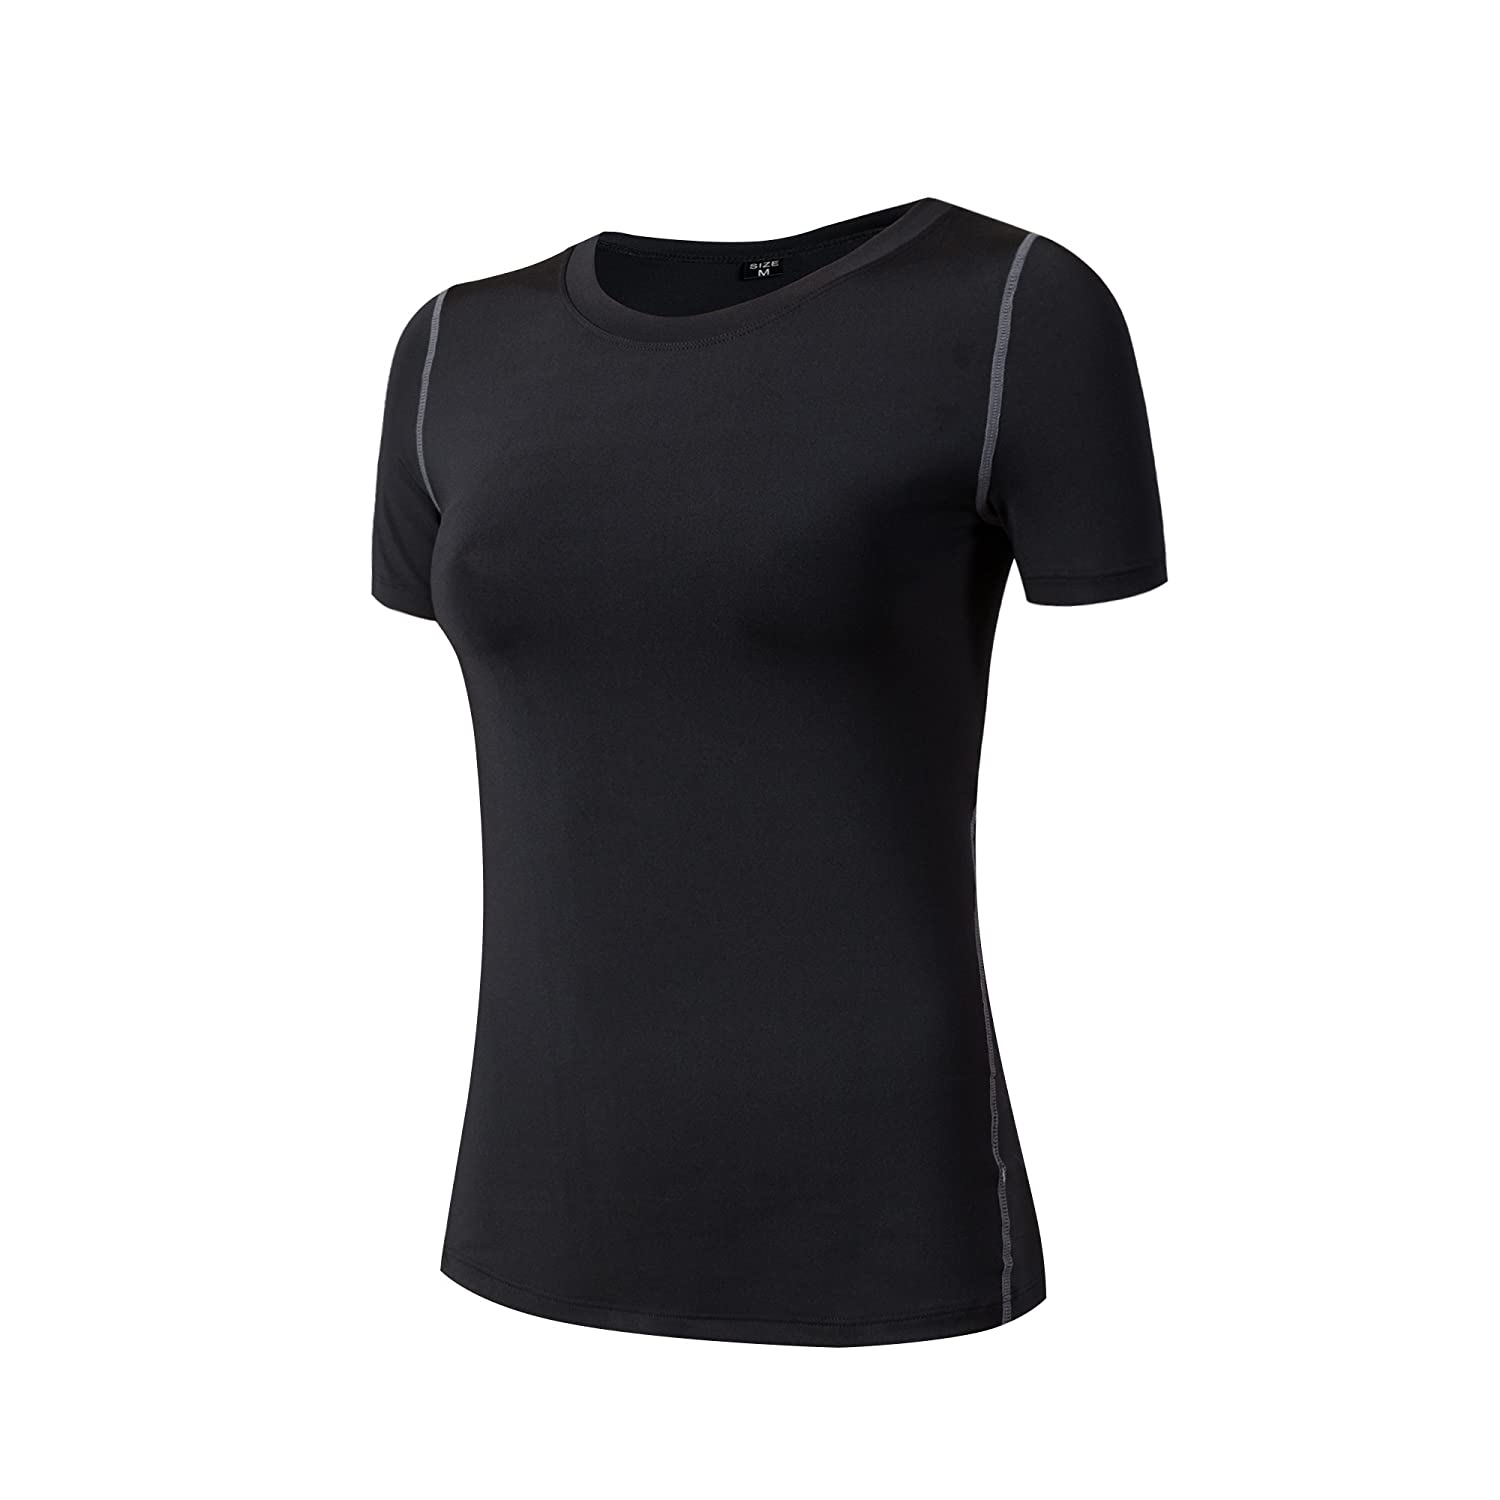 Barrageon Women's Elastic Compression Shirt T-shirt Top Base Layer Exercise Fitness Cross Training Running Gym Yoga Pilates Jogging Short Sleeve Quick Dry Suppresses Sweat Skin Fit Crewneck Thermal Sweatshirt Workout